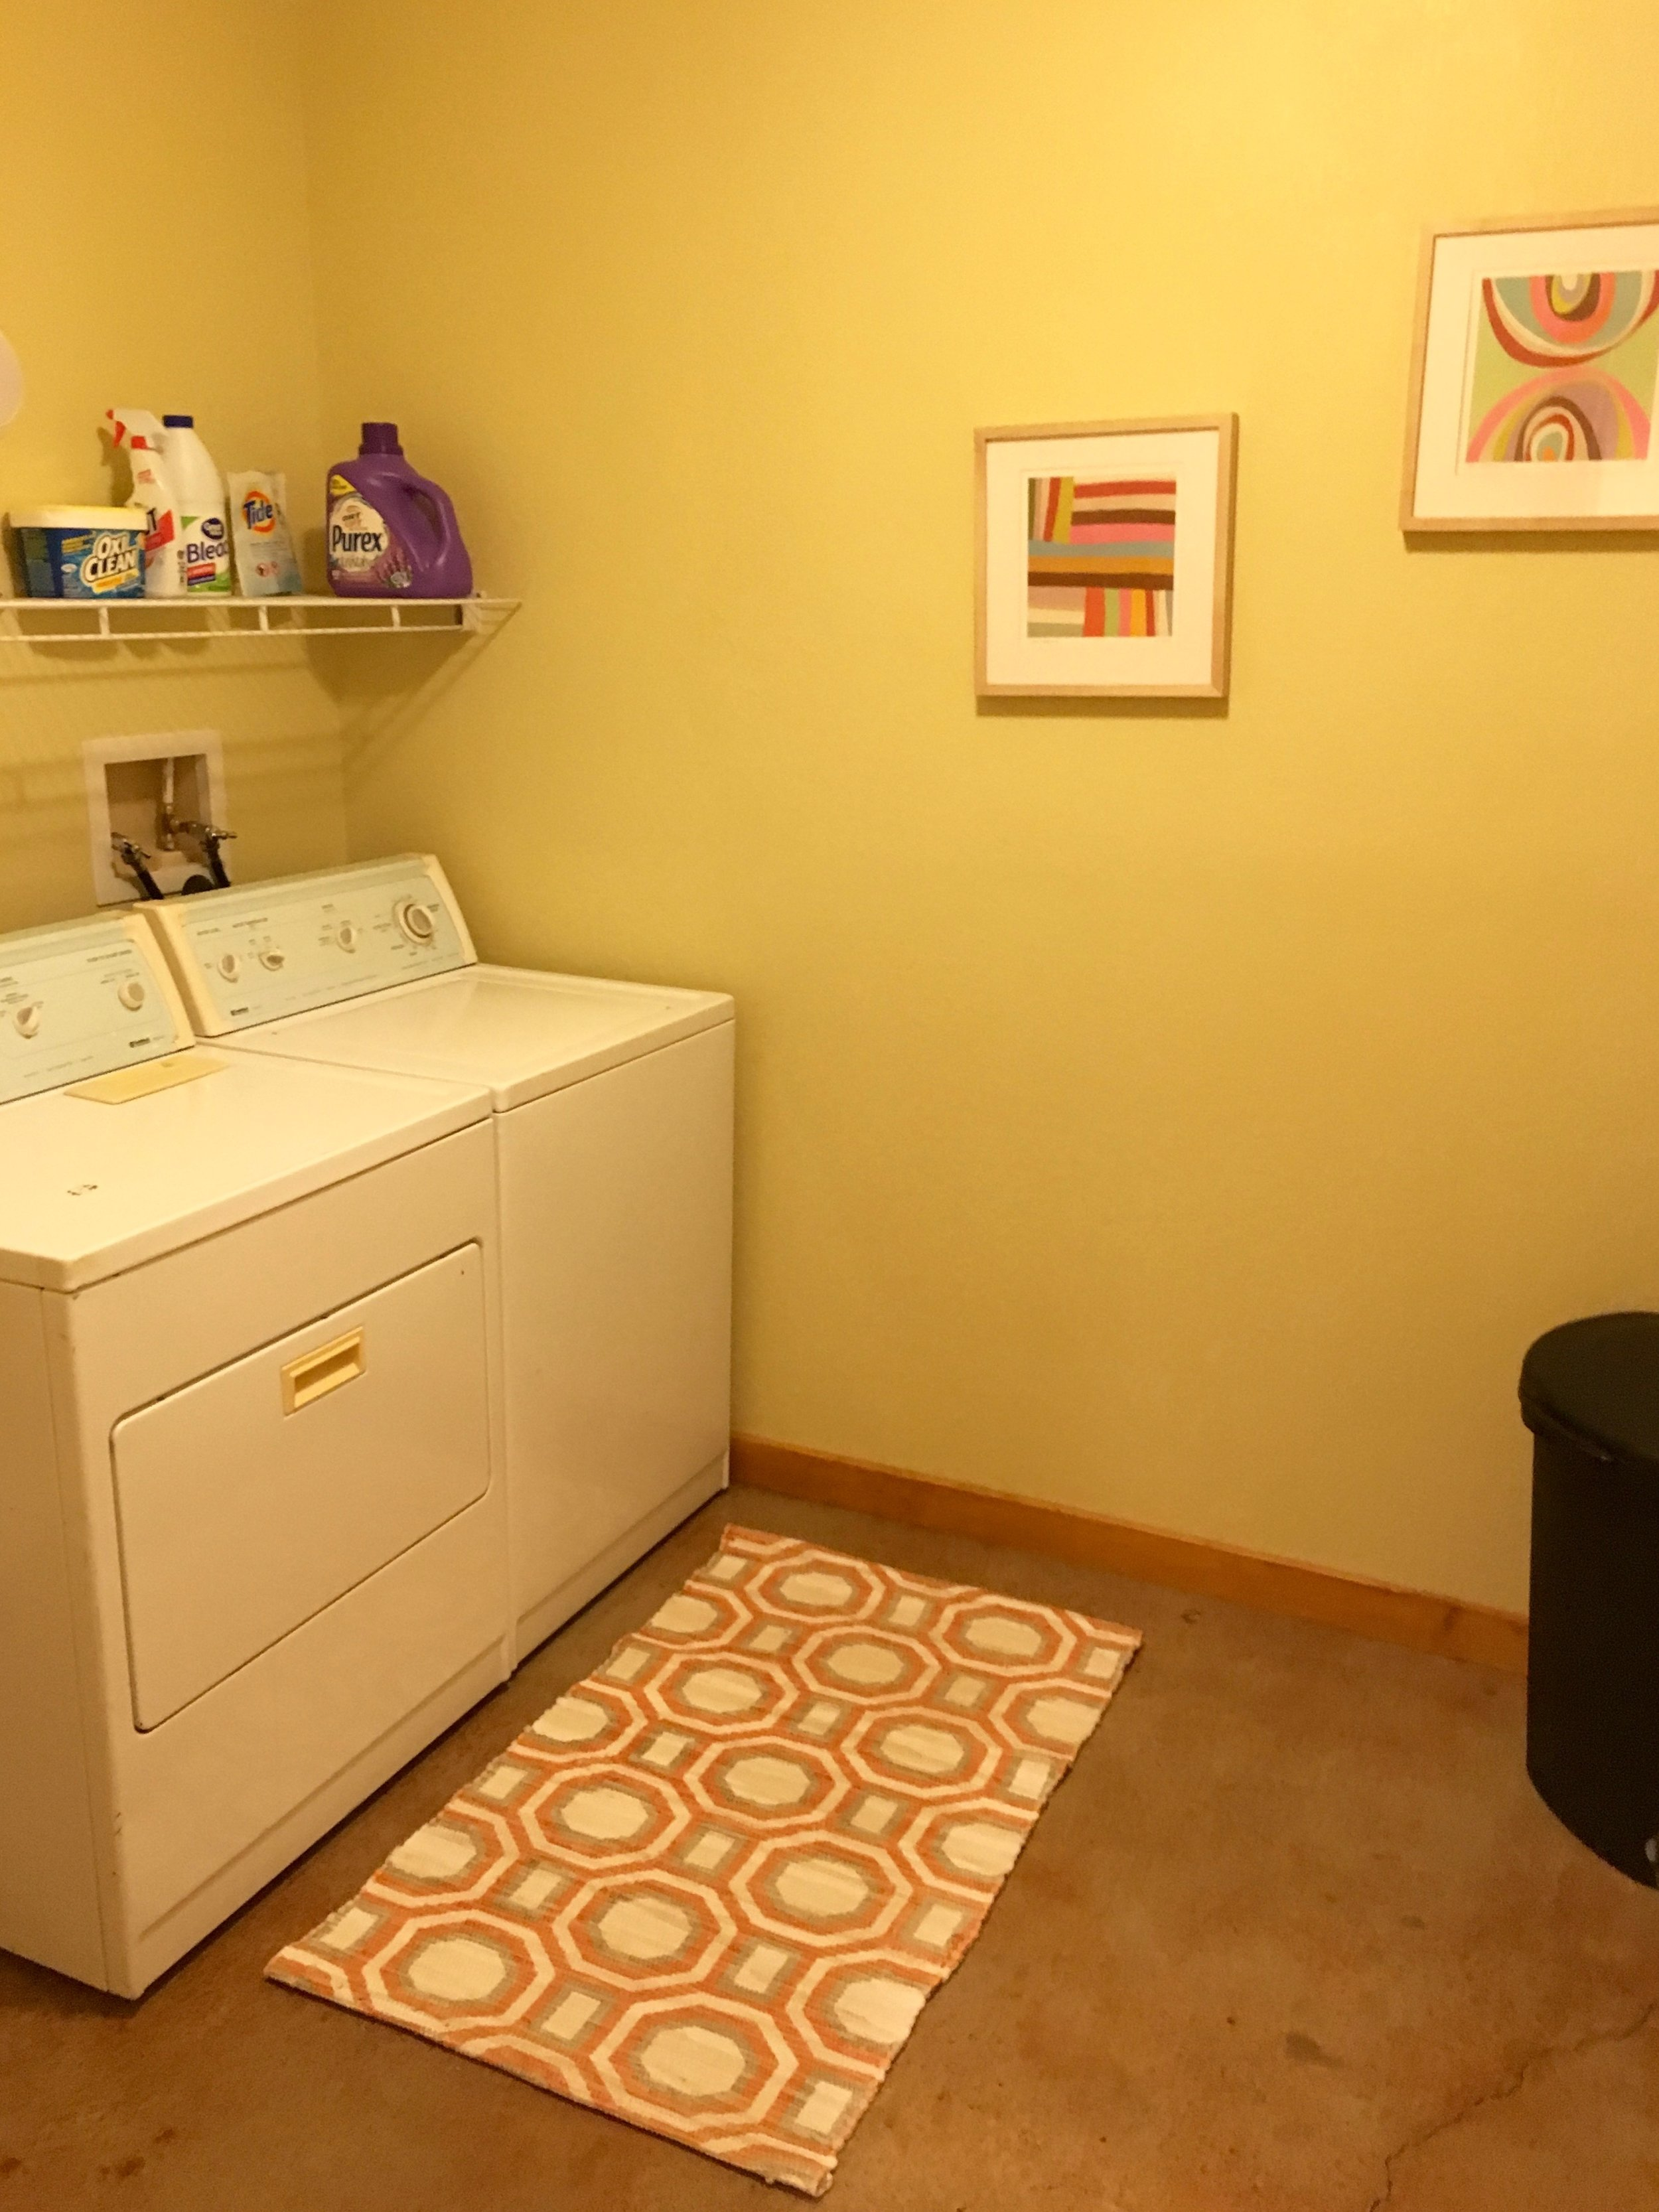 Pine Spring Laundry room